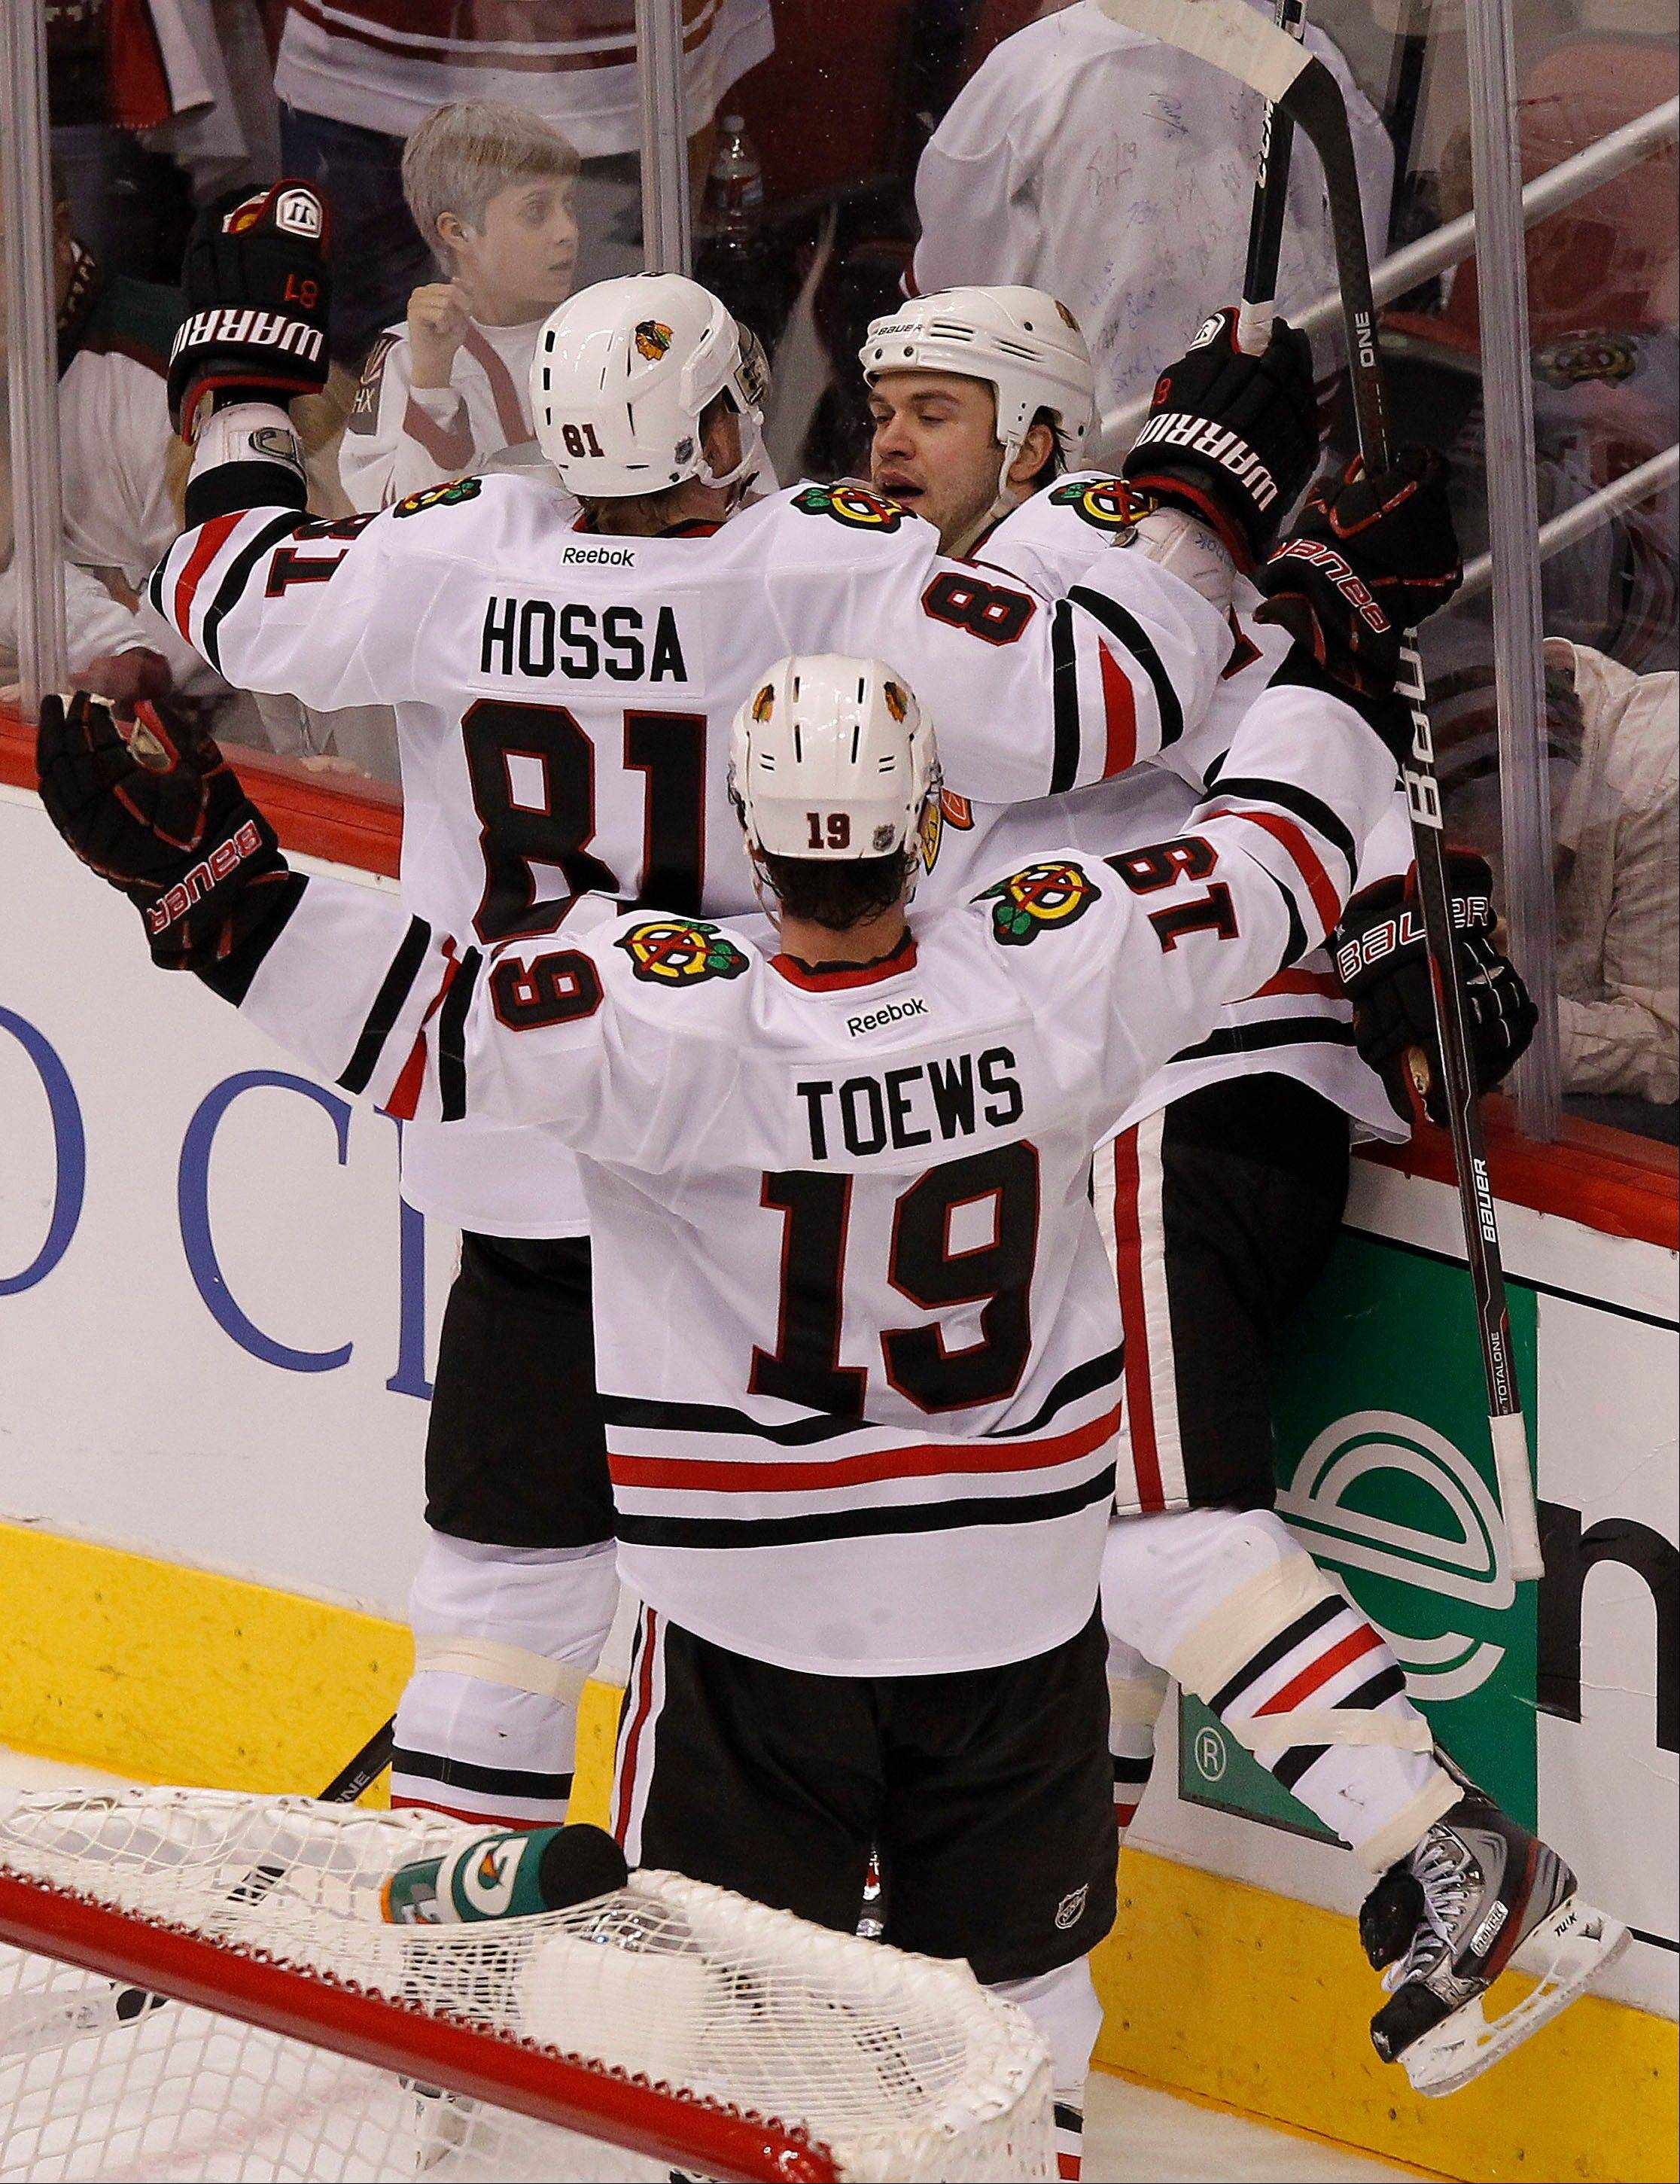 The Blackhawks' Brent Seabrook celebrates his game-tying goal with teammates Marian Hossa and Jonathan Toews with 14 seconds left in regulation in Game 1 on Thursday night. The Hawks fell in overtime.